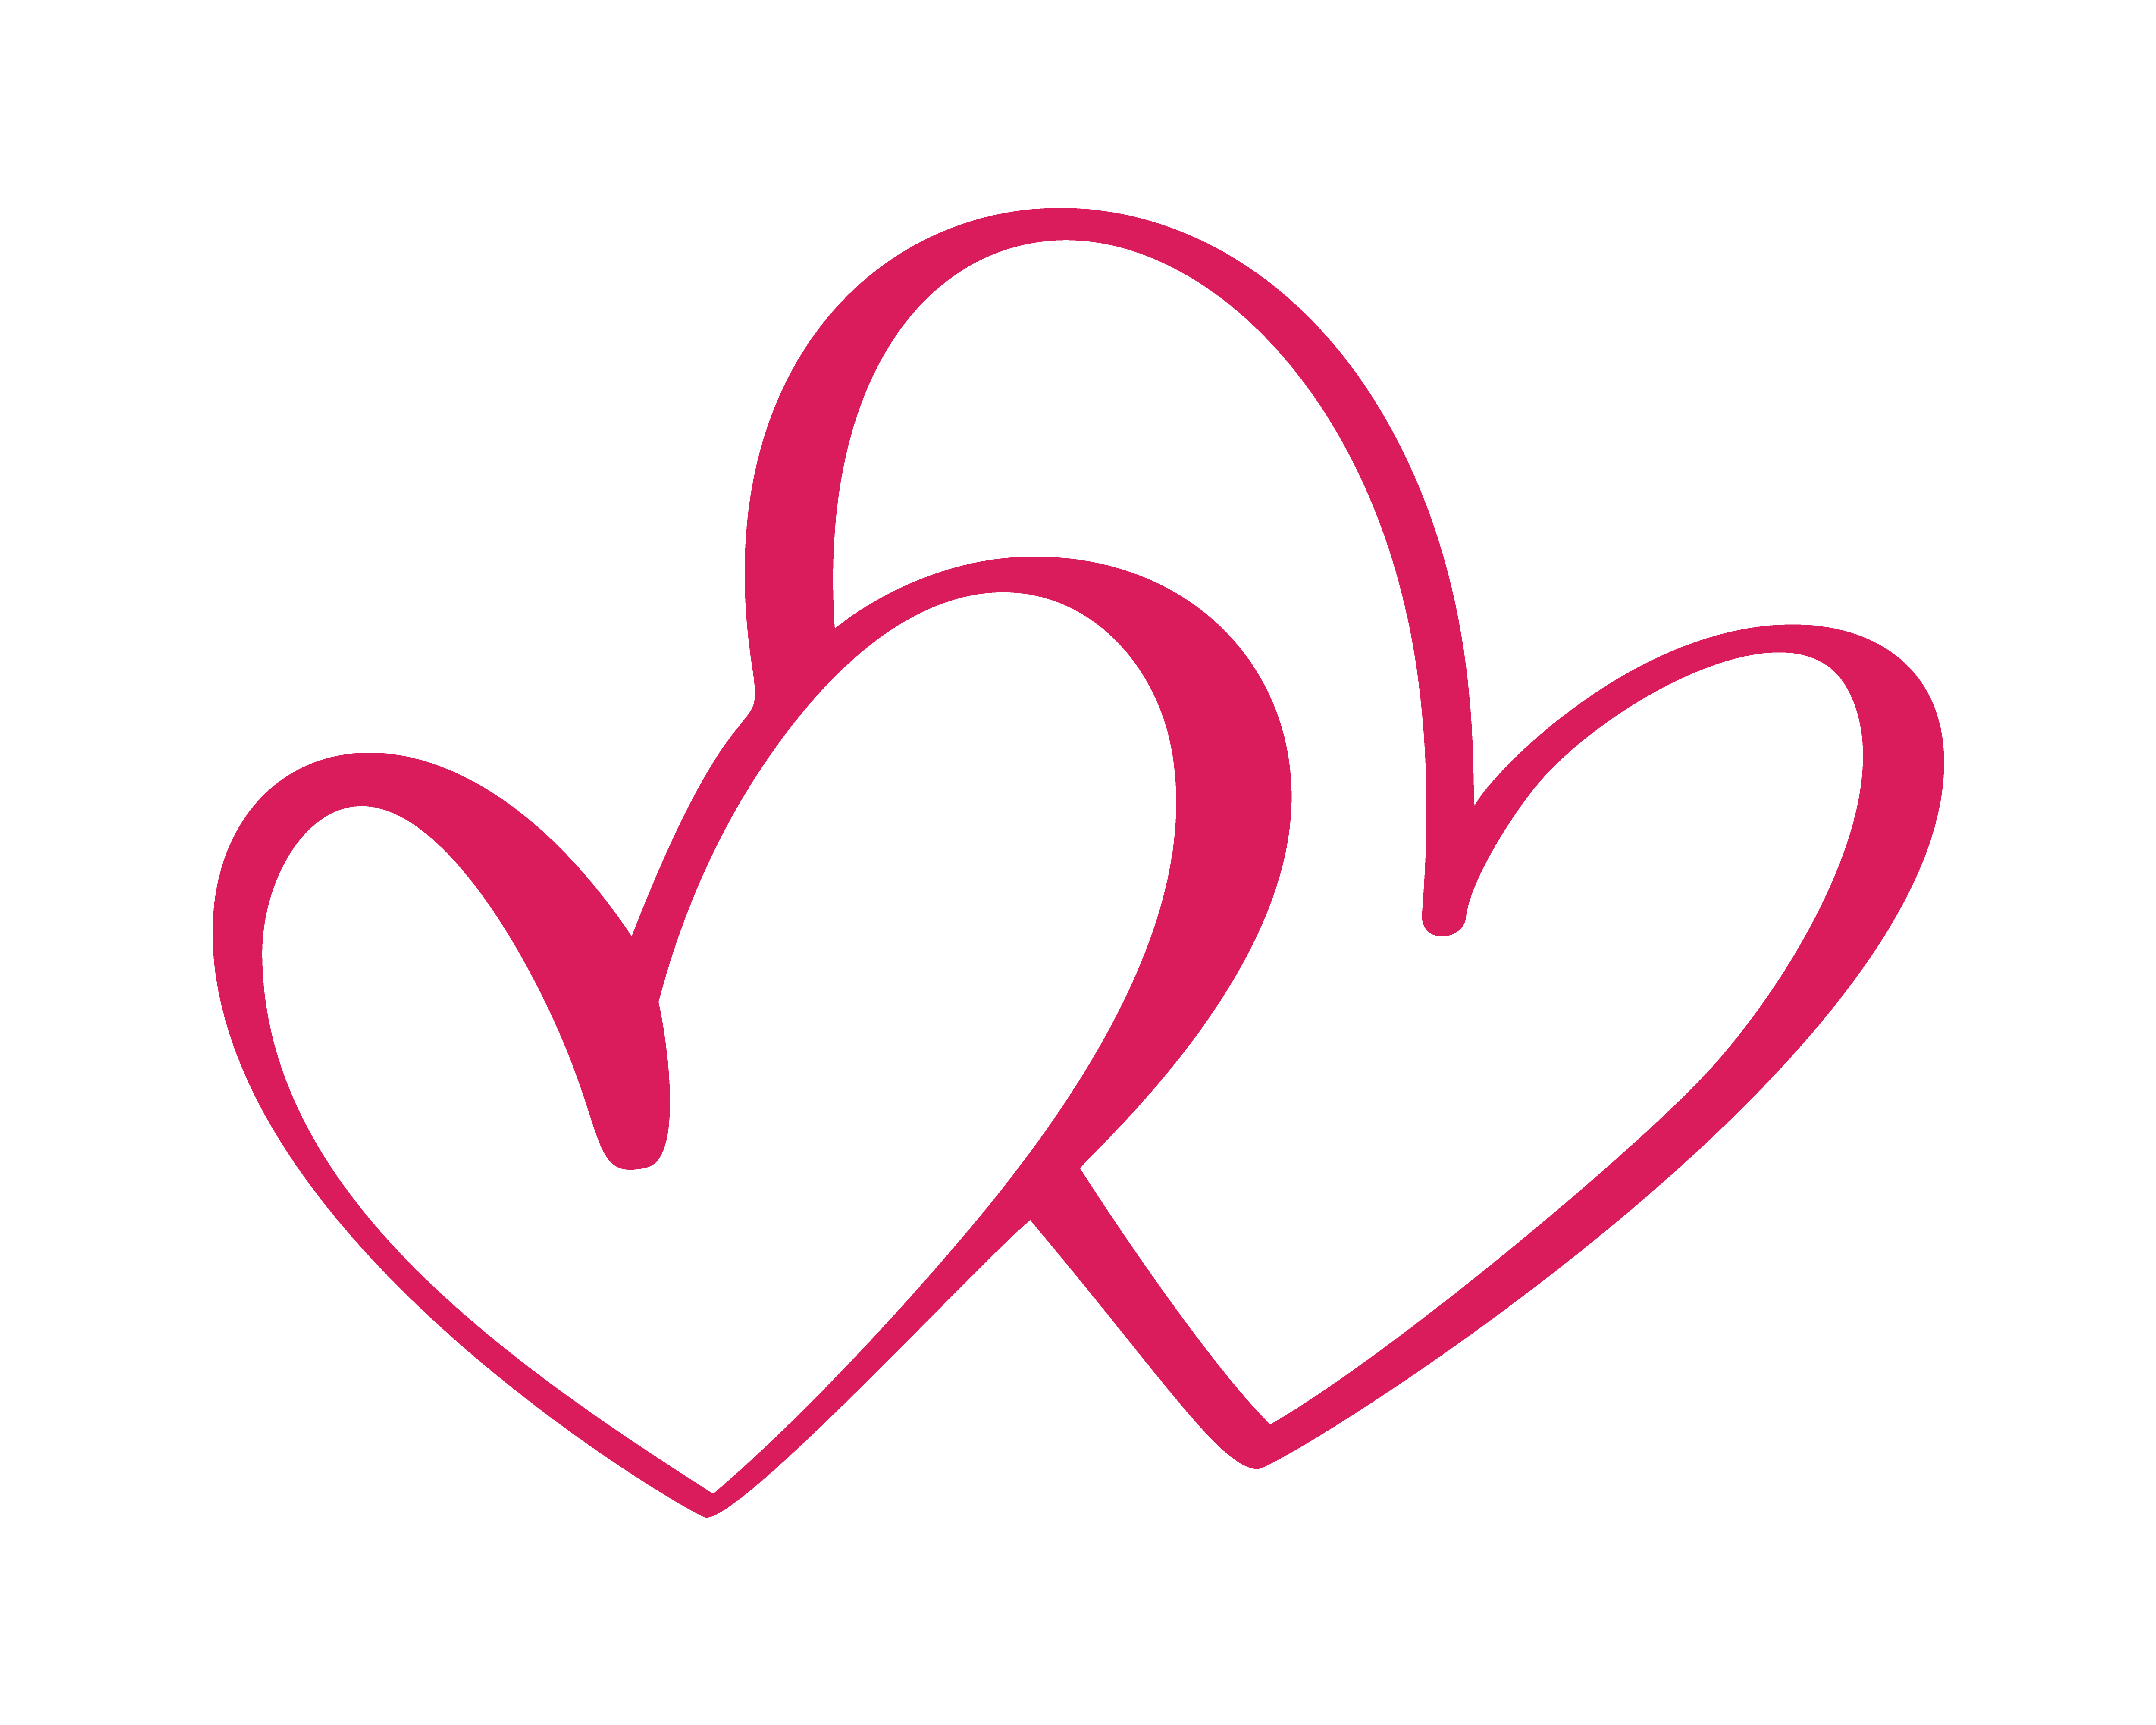 Heart two love sign icon on white background romantic for Love sign